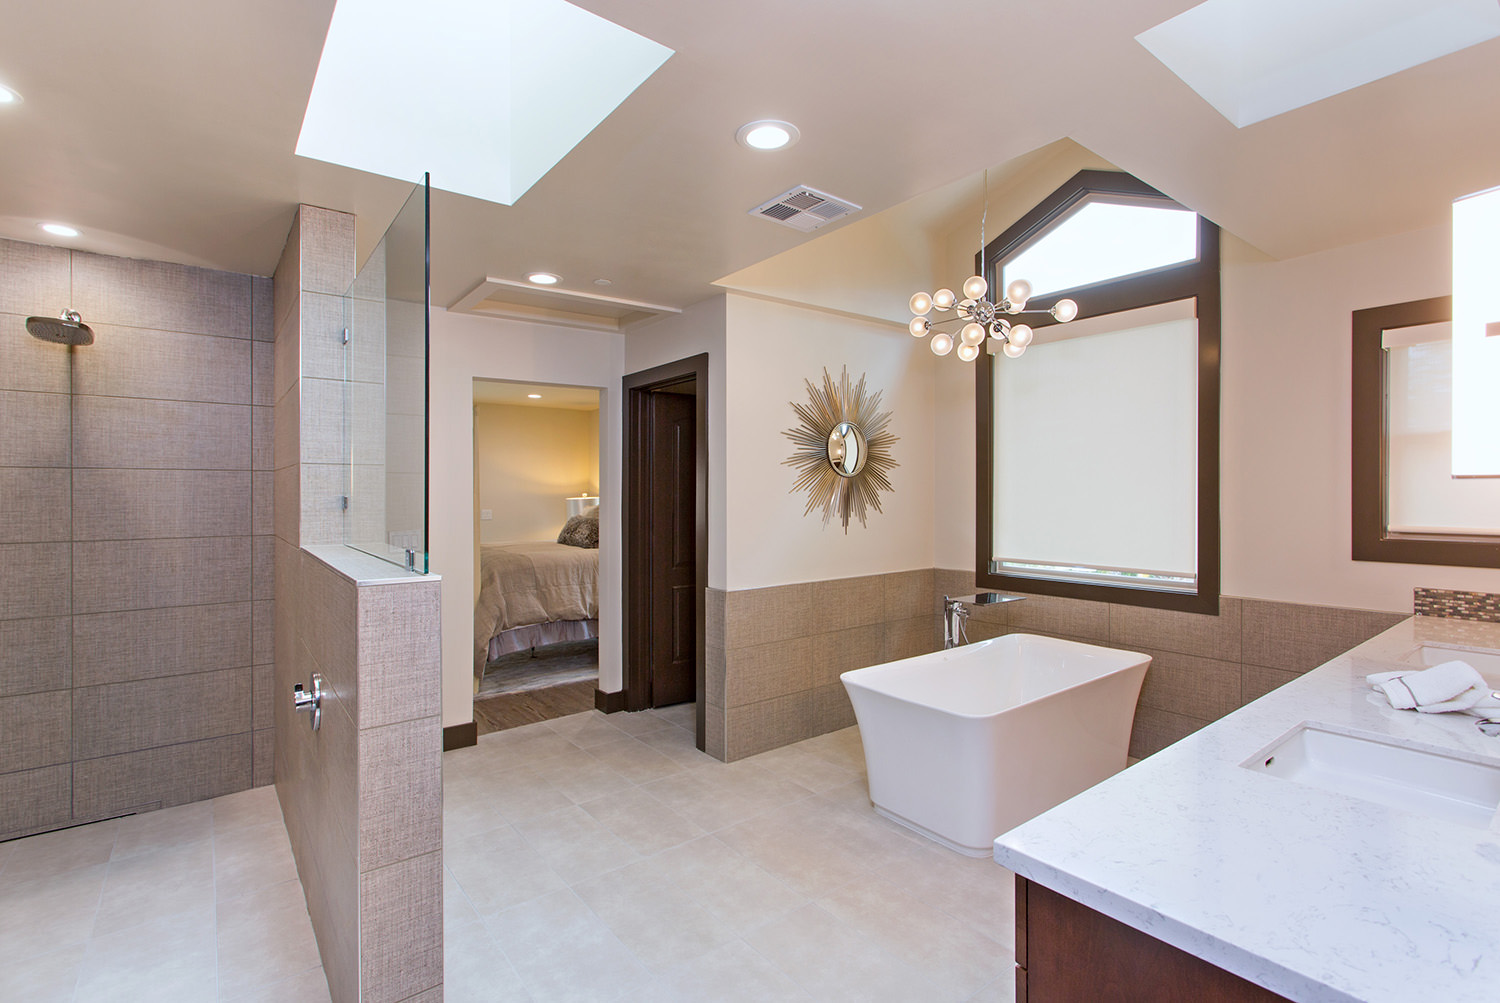 bathroom-interior-design-los-altos-california-ktj-design-co-15.jpg